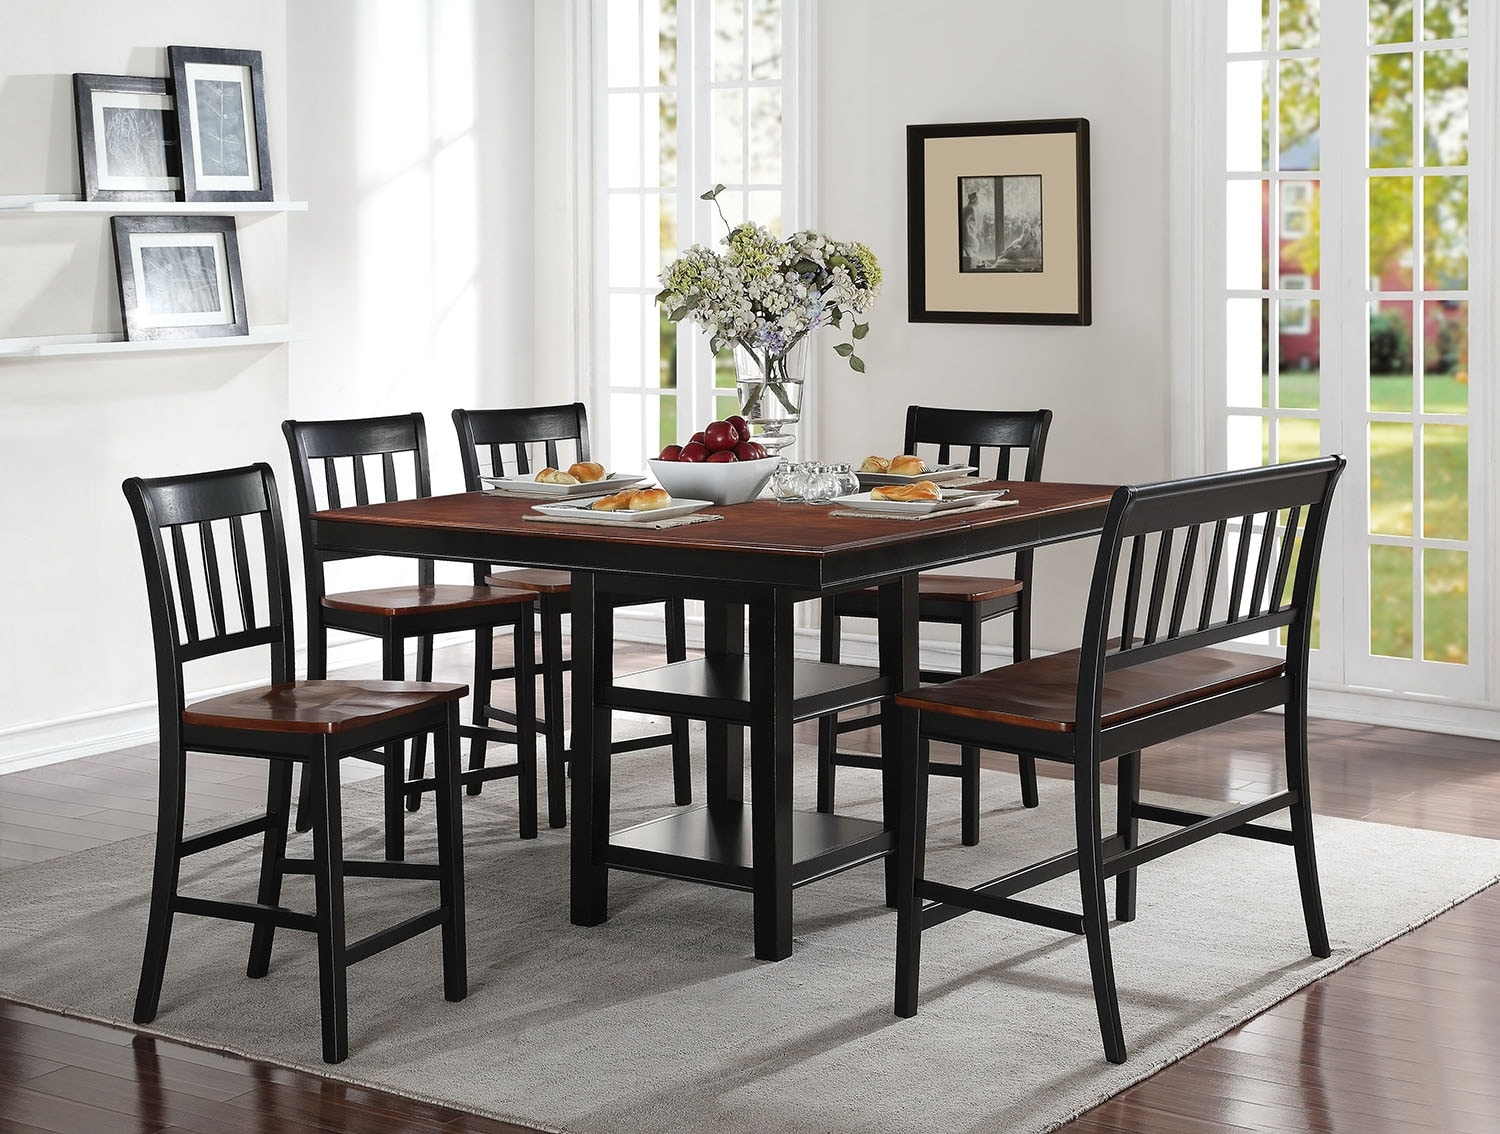 Dining Room Furniture - Nyla 6-Piece Counter-Height Dining Package – Black and Cherry